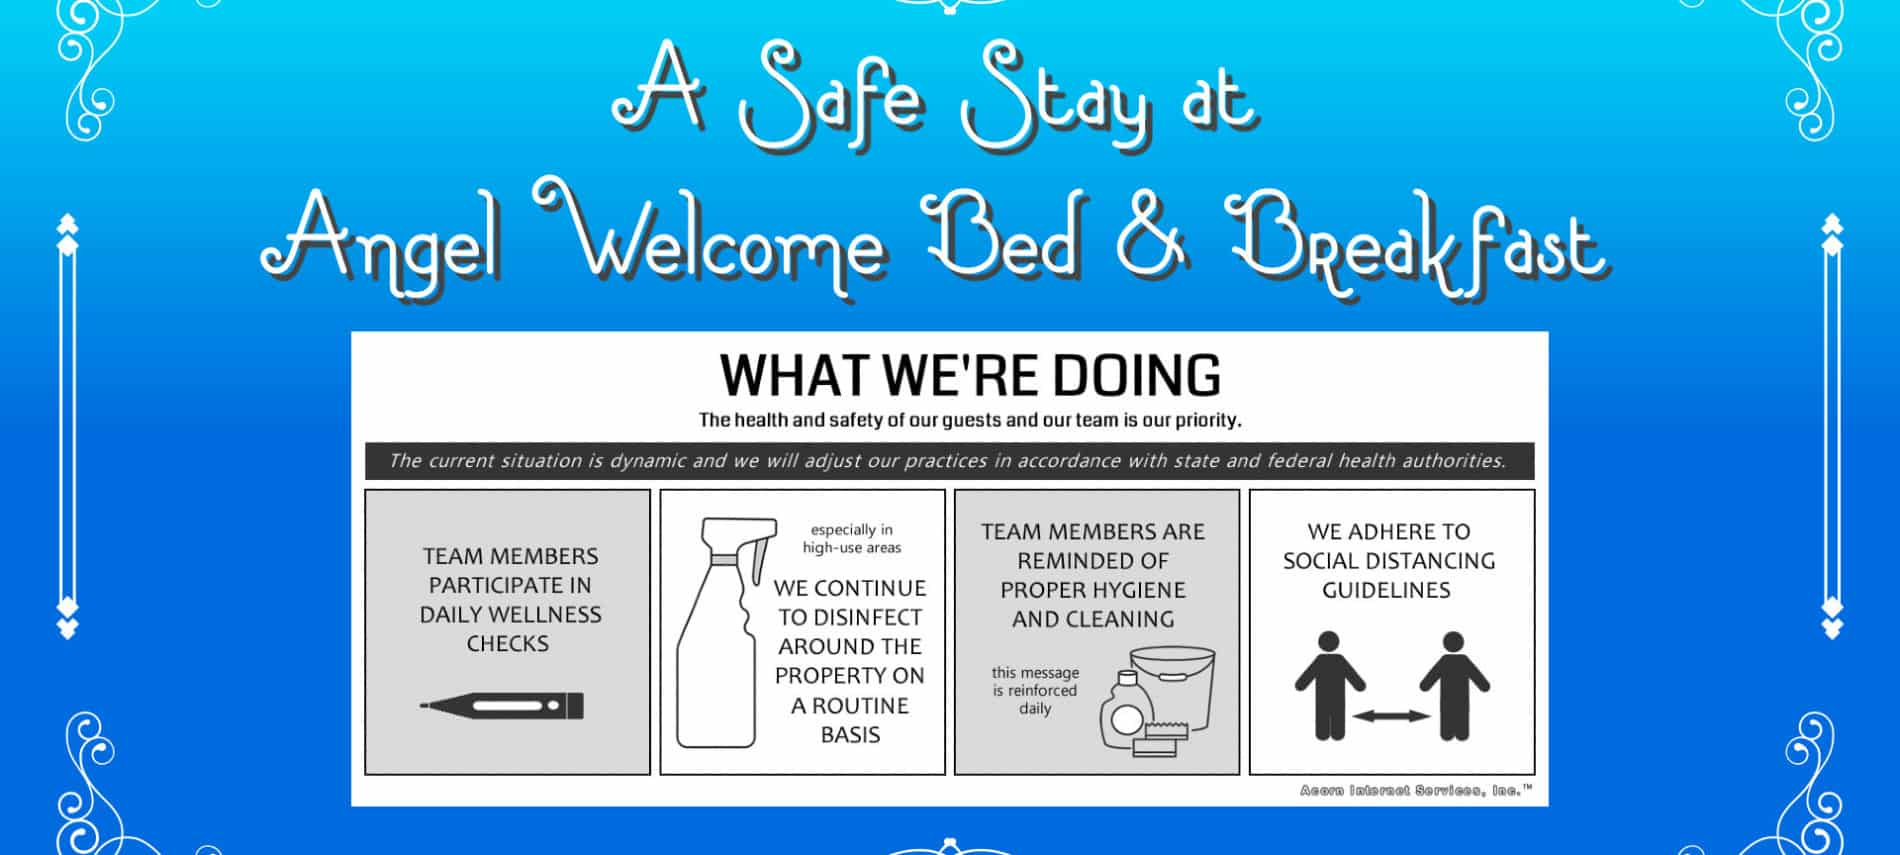 Stay Safe Precautions at Angel Welcome Bed & Breakfast